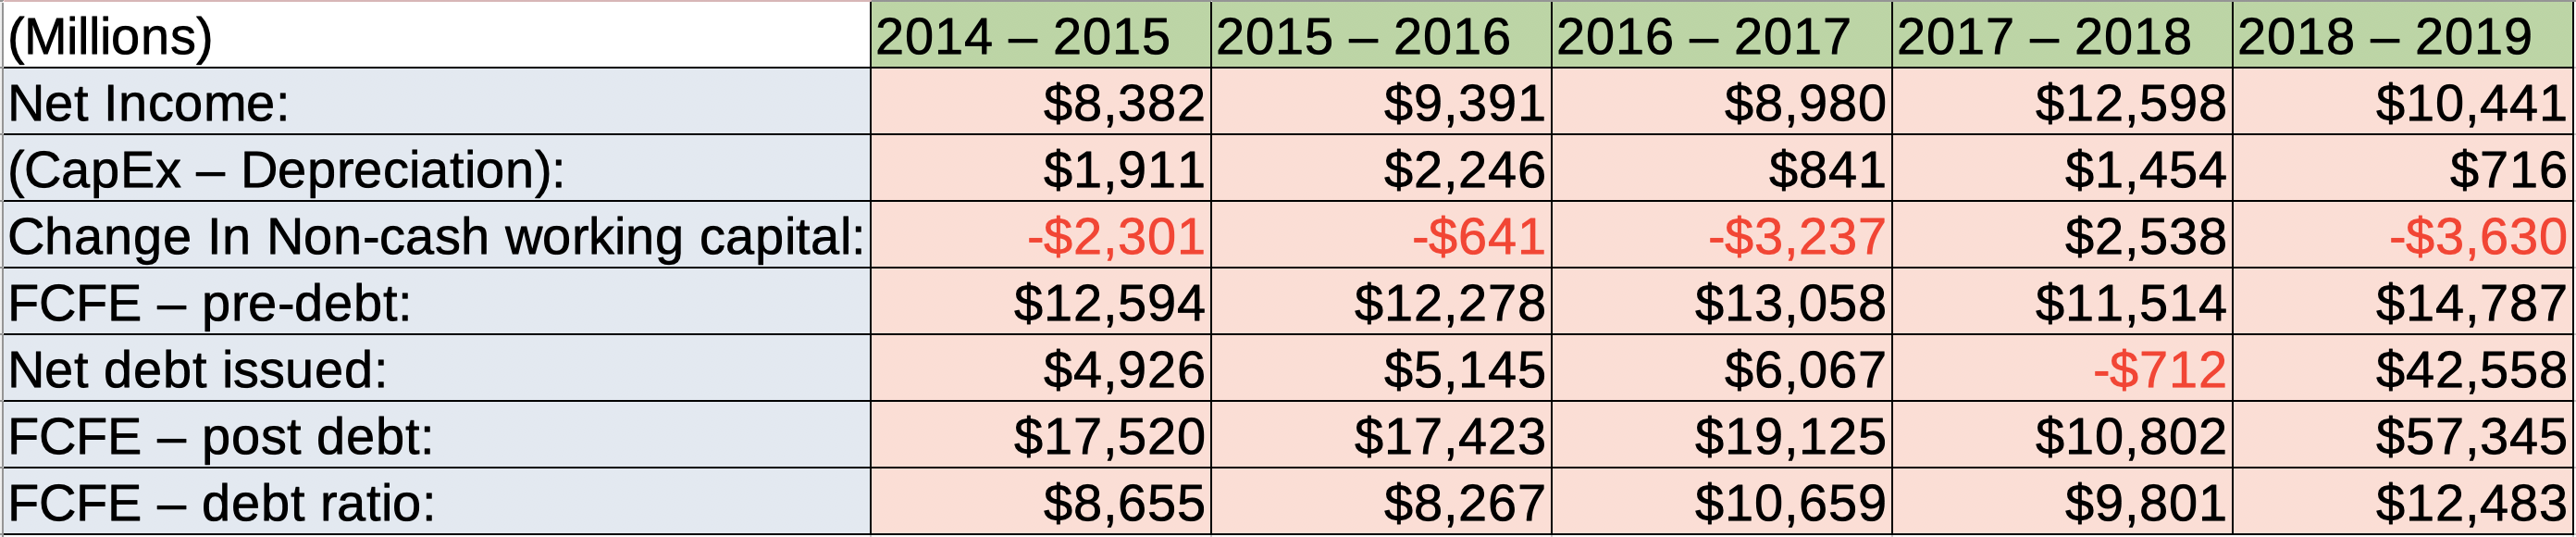 The Walt Disney Company Free Cash Flows to equity investors 2015 - 2019